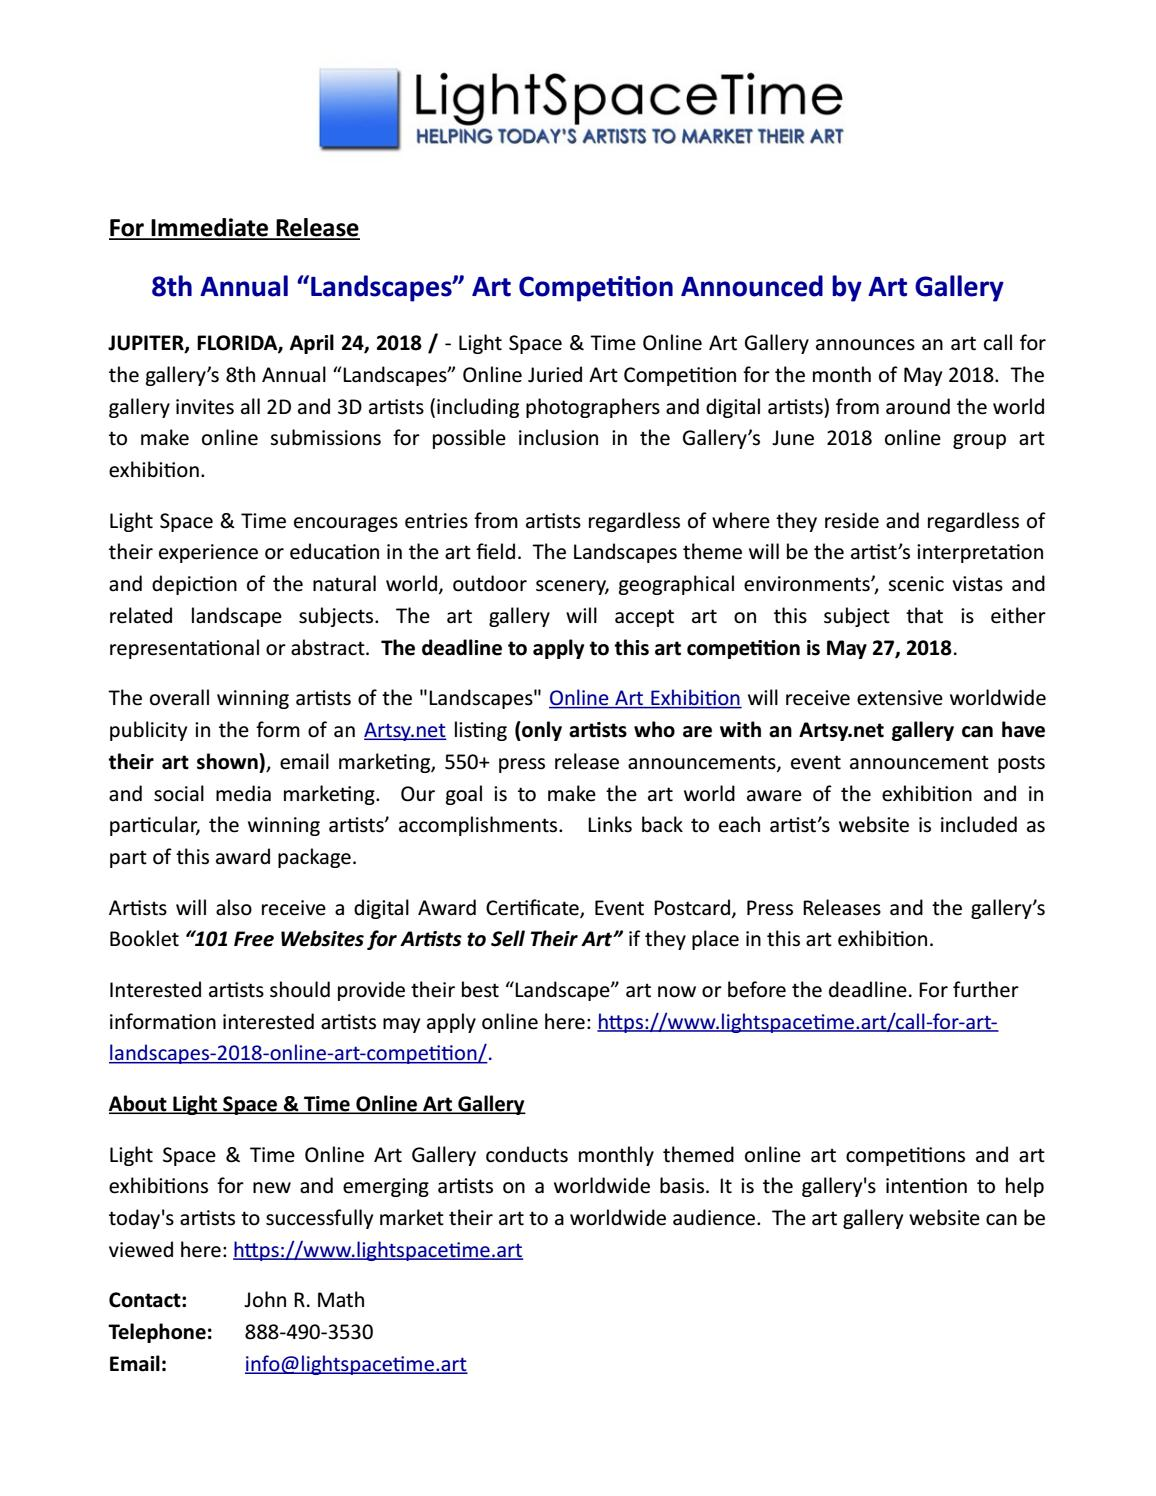 Call For Art Theme Landscapes Online Art Competition By Light Space Time Online Art Gallery Issuu